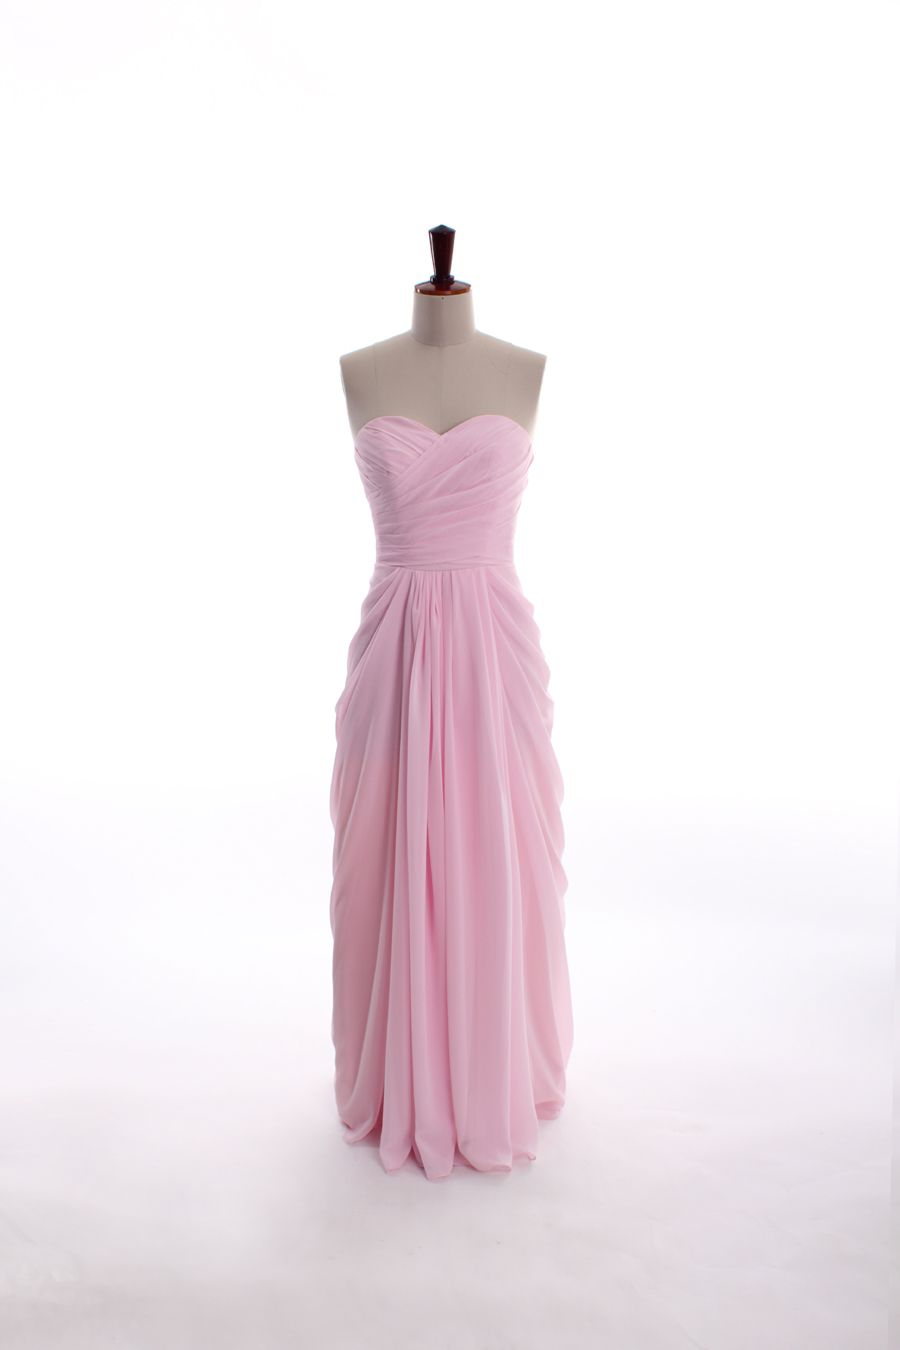 sweetheart neckline chiffon dress. BRIDESMAIDS! | Pretty pink dress ...